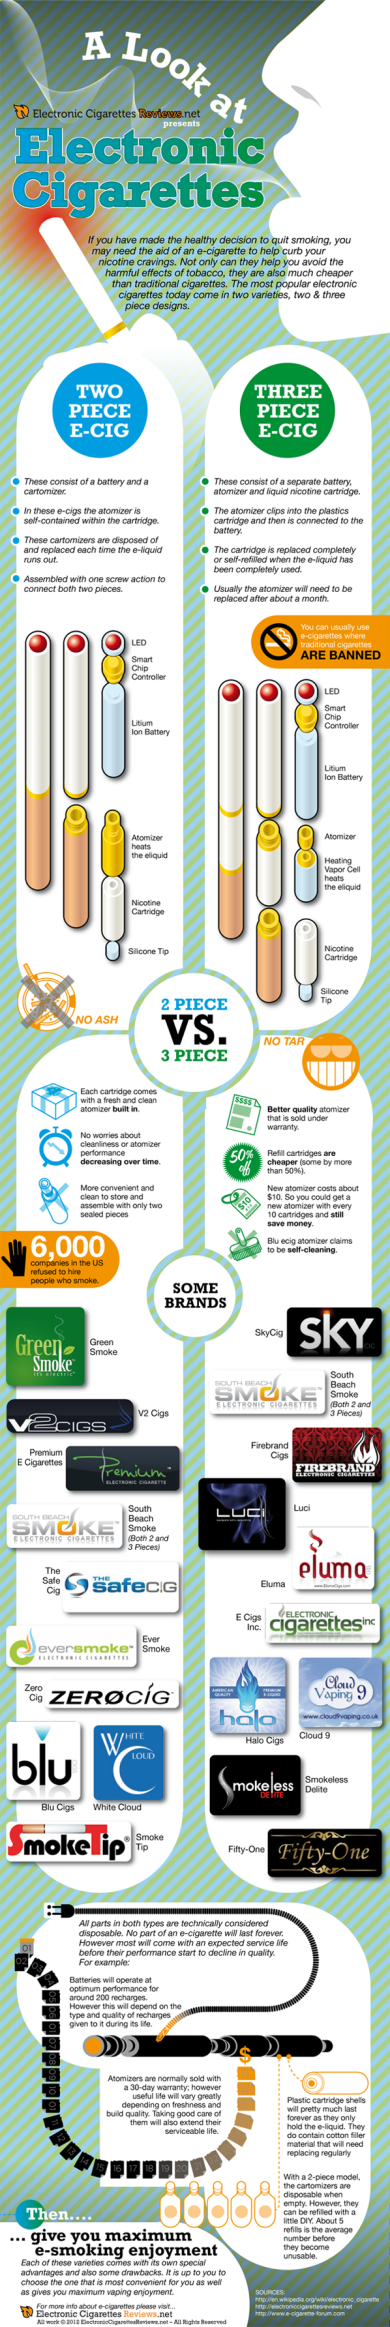 a look at ecigs infographic